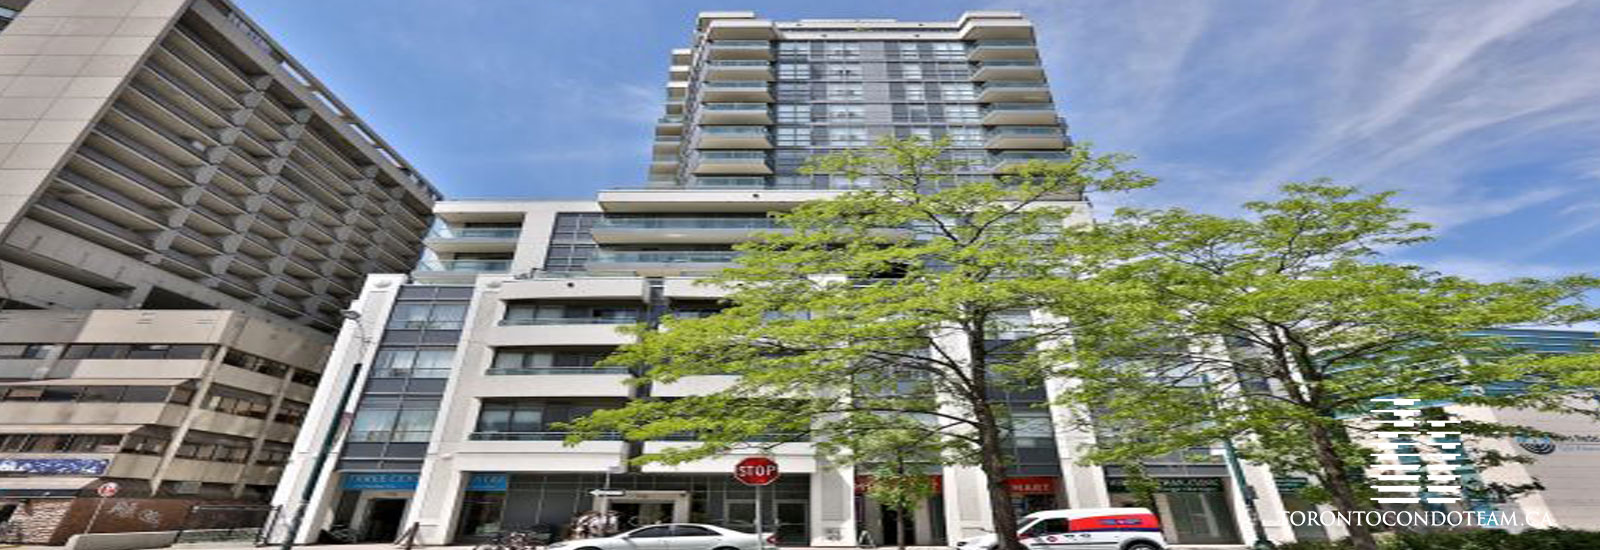 736 Spadina Road Condos For Sale